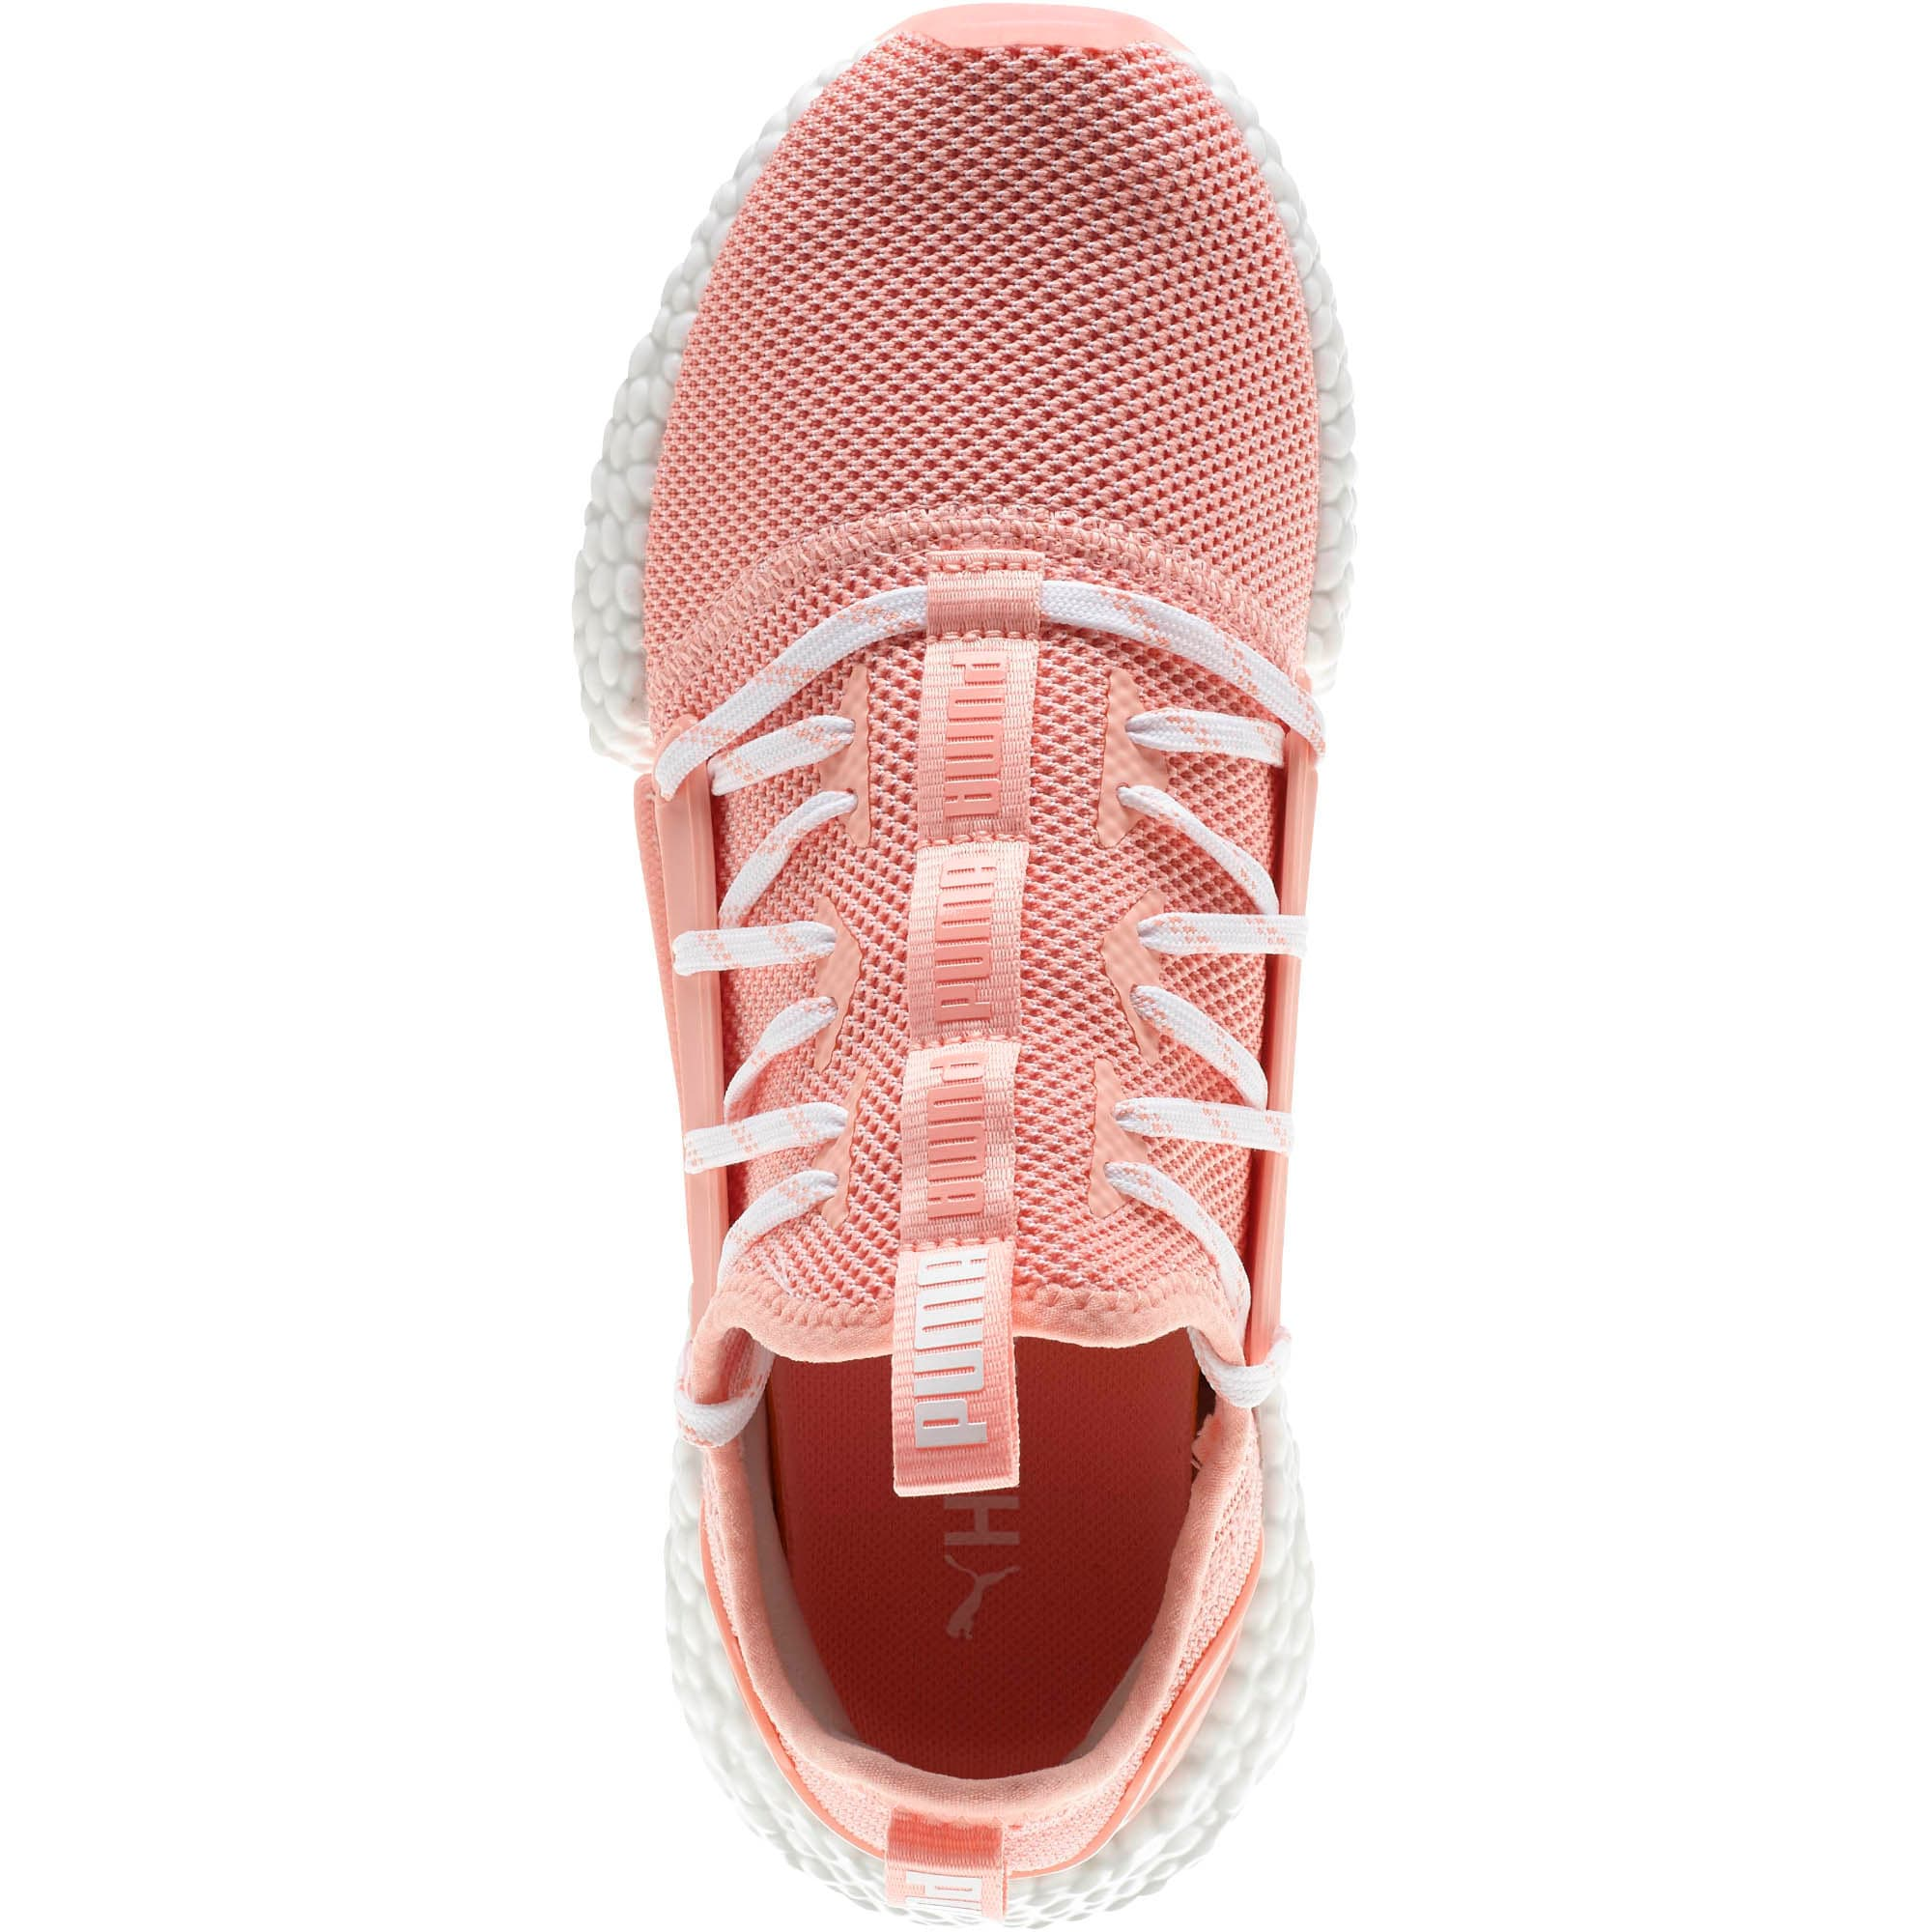 Thumbnail 5 of HYBRID Rocket Runner Women's Running Shoes, Peach Bud-Puma White, medium